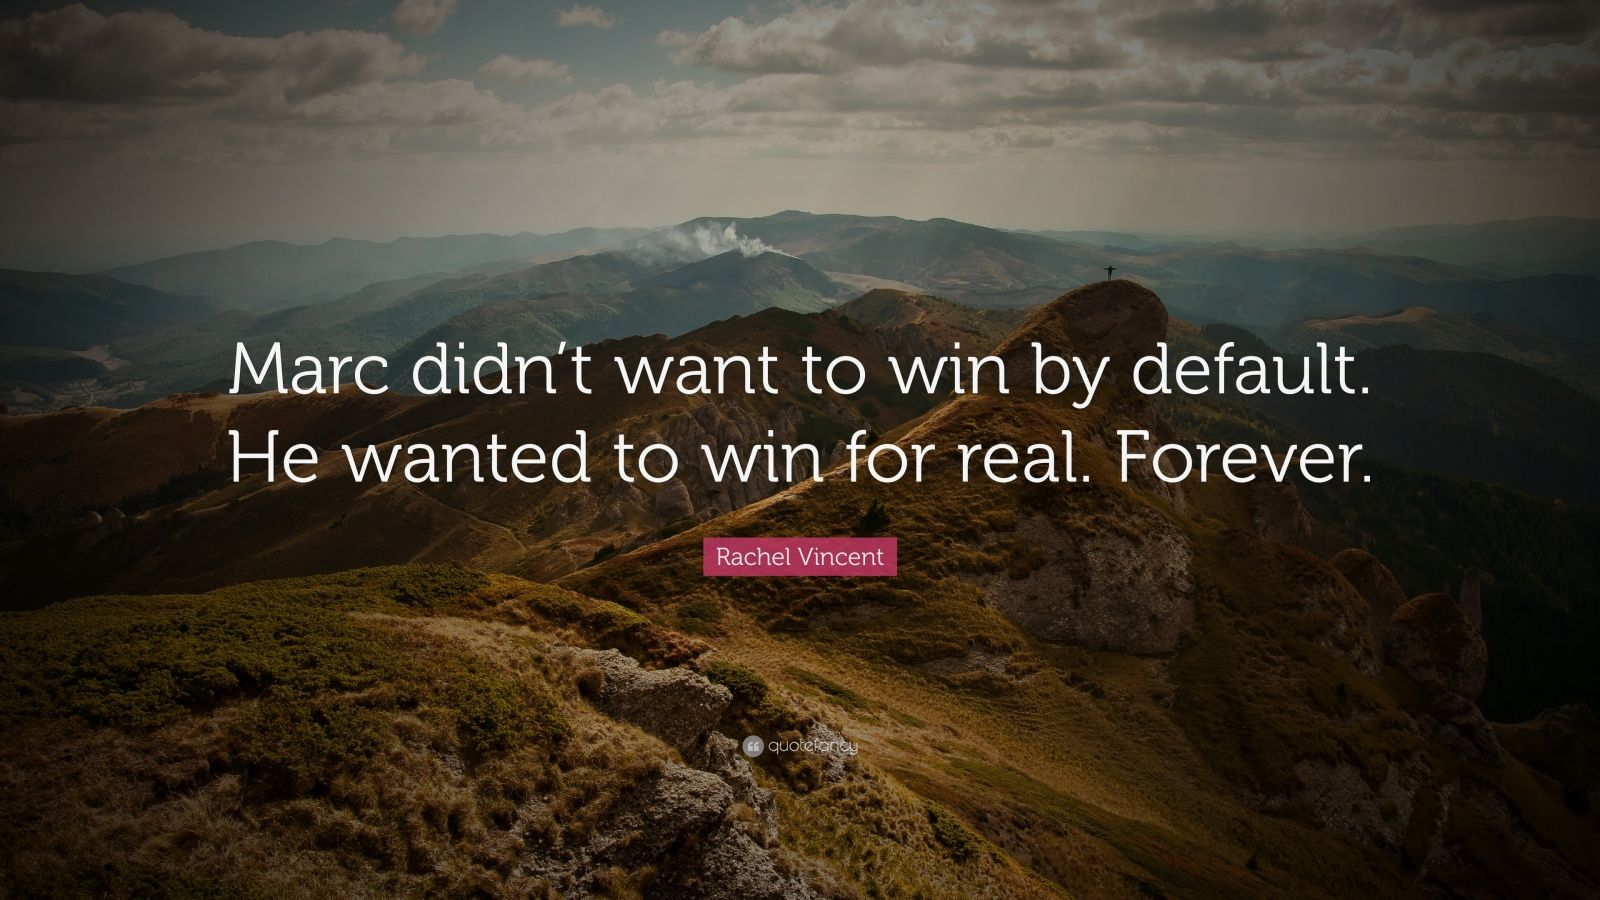 """Rachel Vincent Quote: """"Marc didn't want to win by default. He wanted to win for real. Forever."""""""